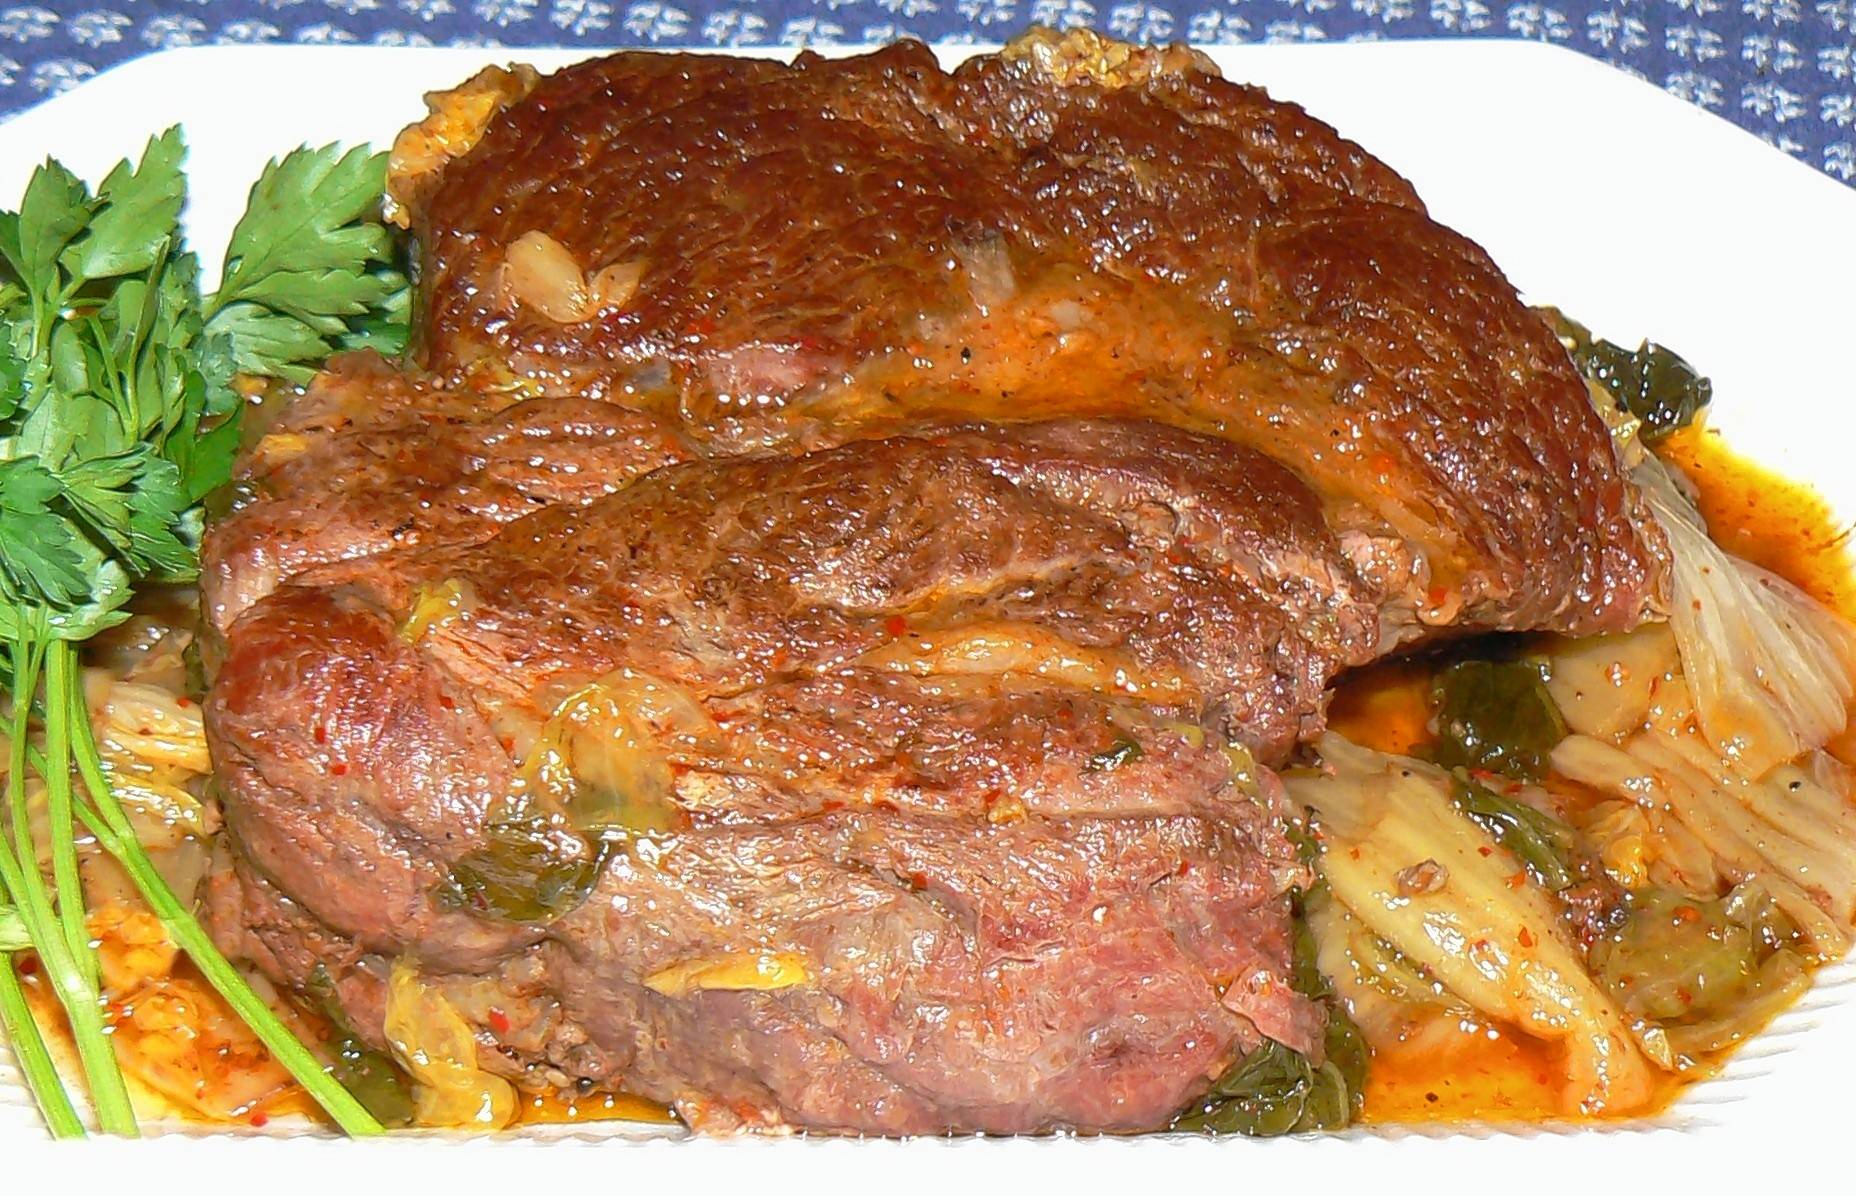 An unusual flavor profile provides a tasty boost to a classic pot roast.